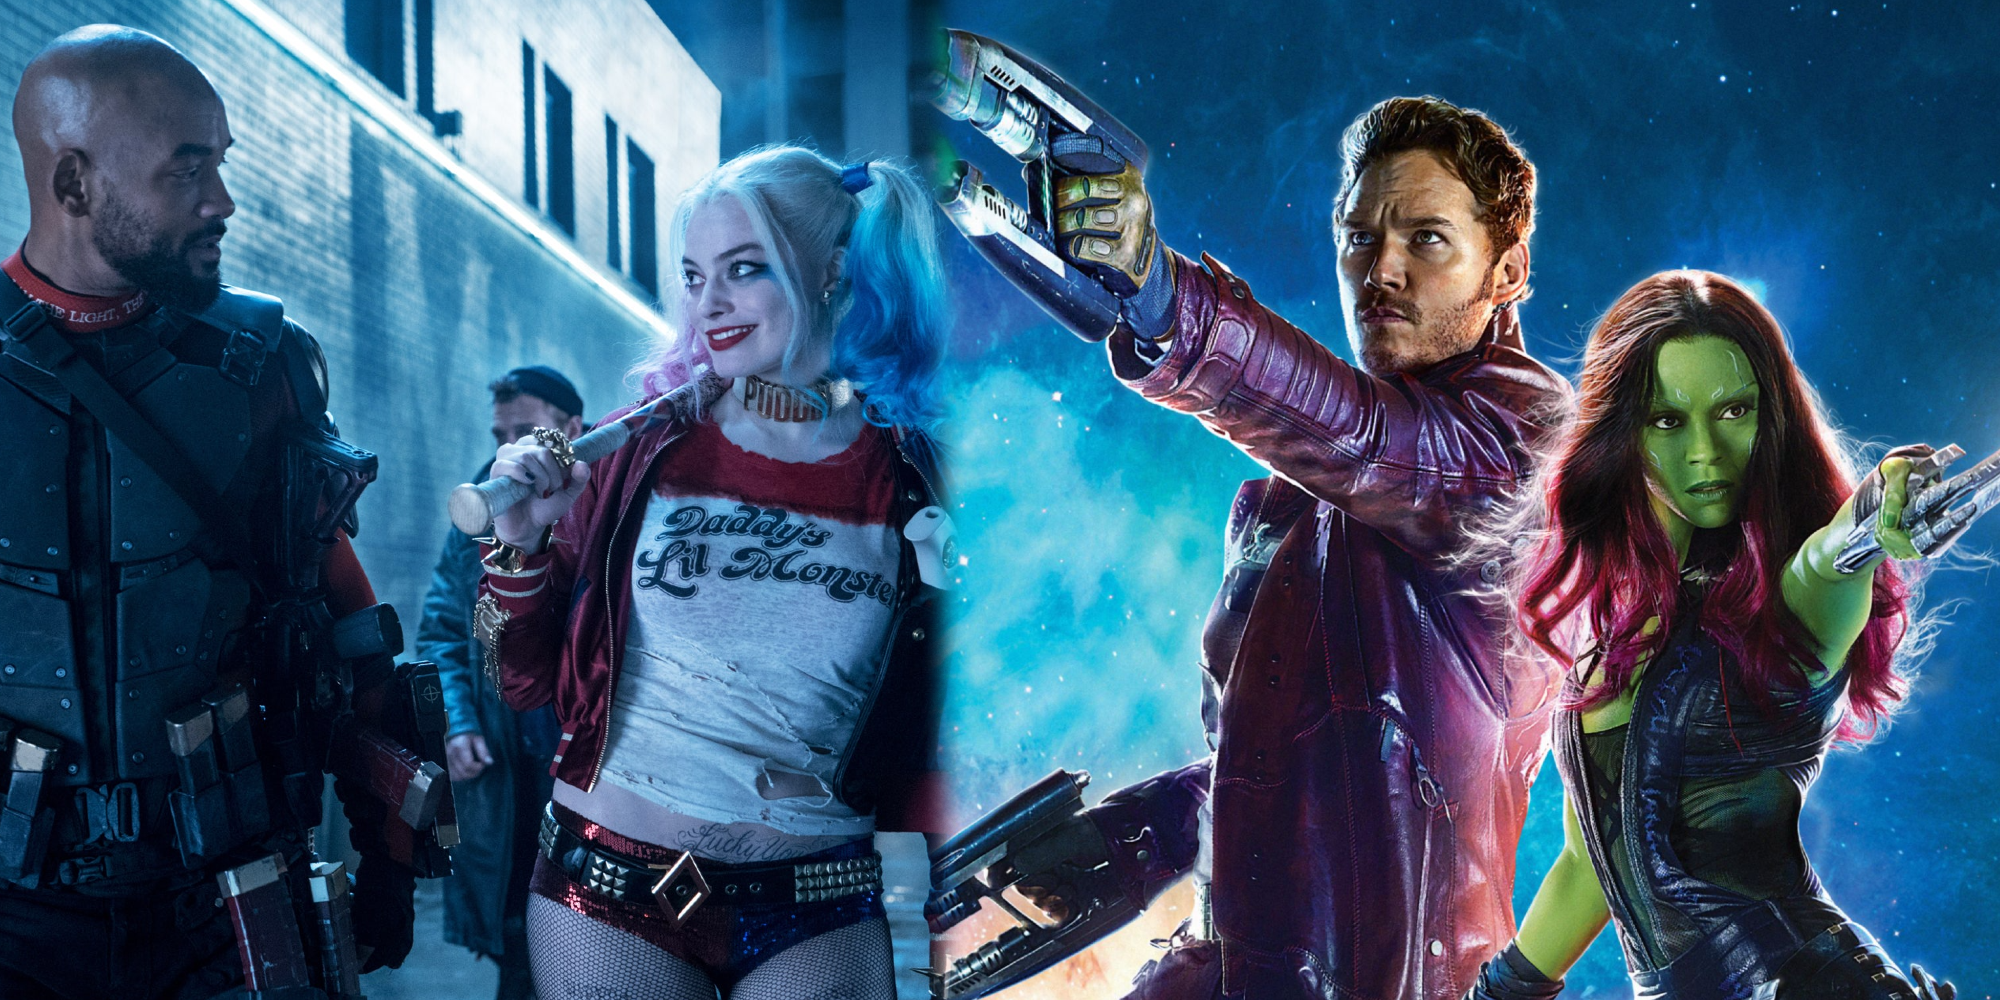 James Gunn Talked To Marvel & DC About GotG-Suicide Squad Crossover